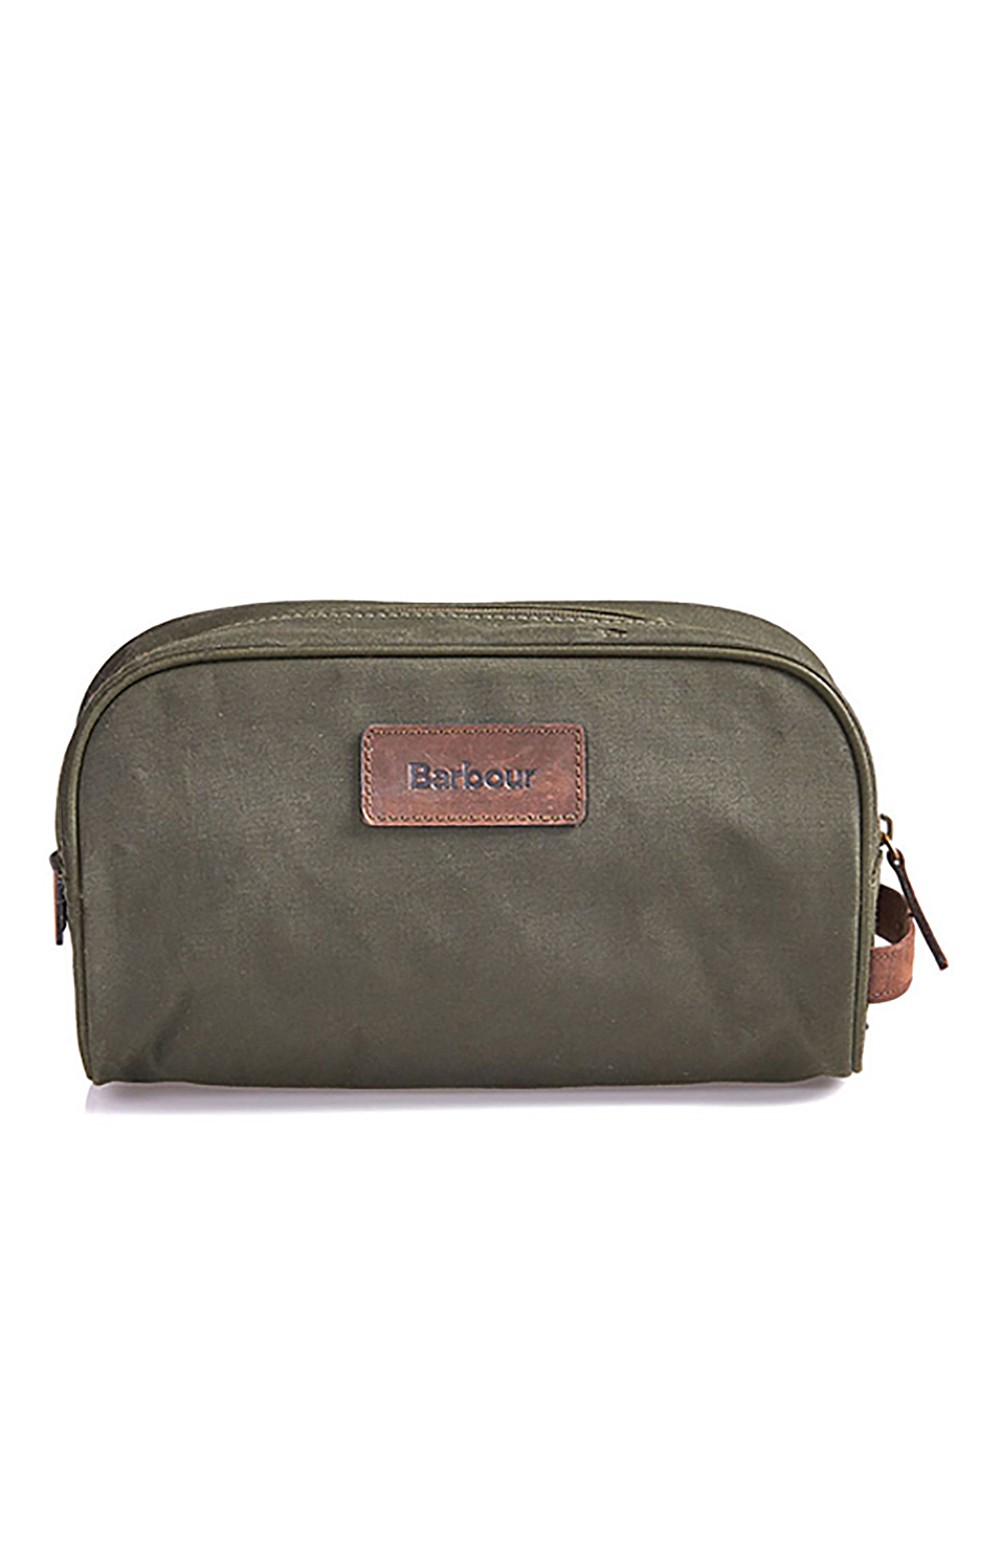 2a662a8333 Barbour Drywax Washbag - House of Bruar